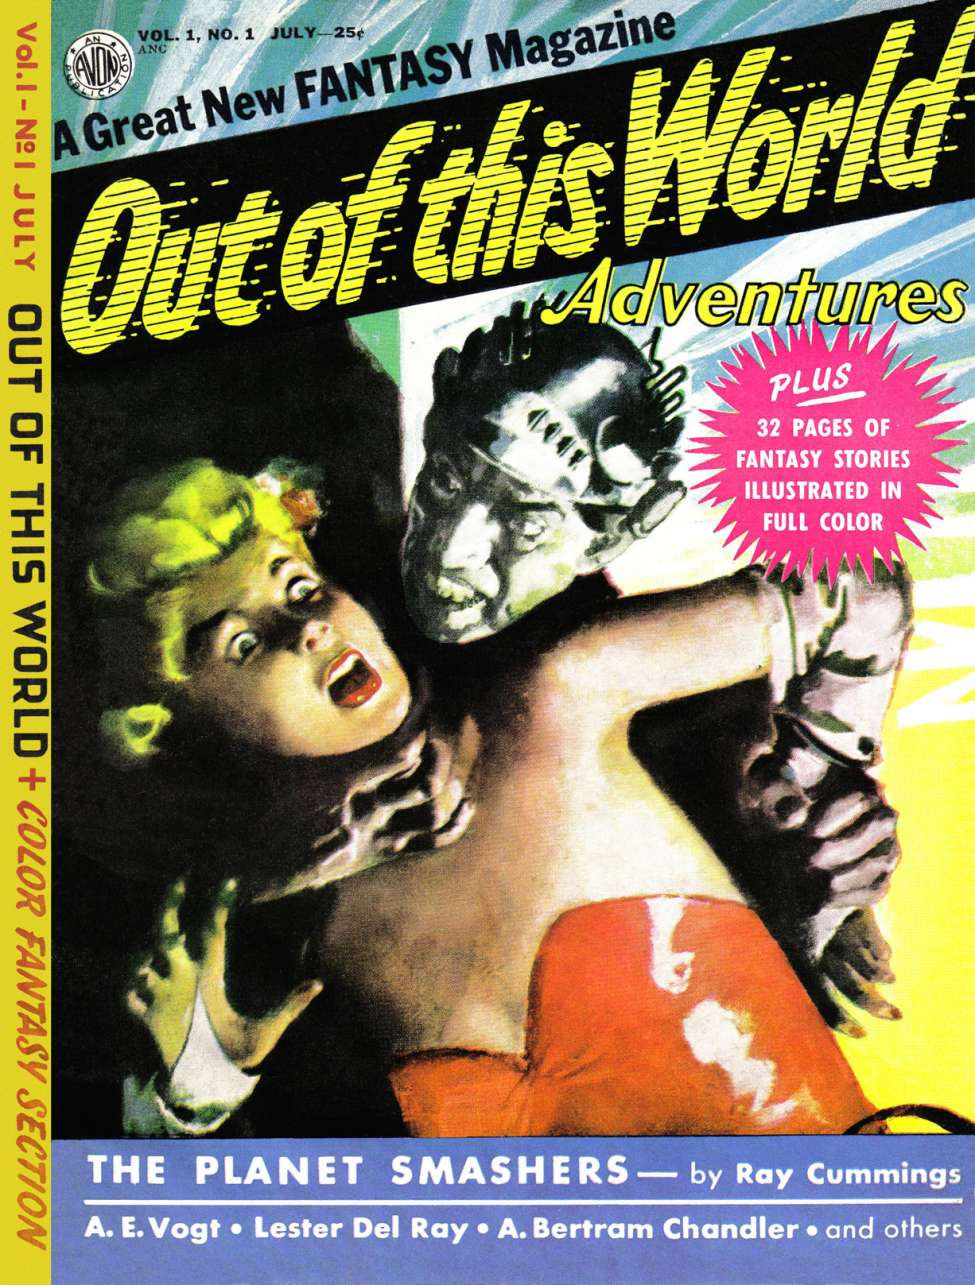 Comic Book Cover For Out of This World Adventures #1 - Version 1